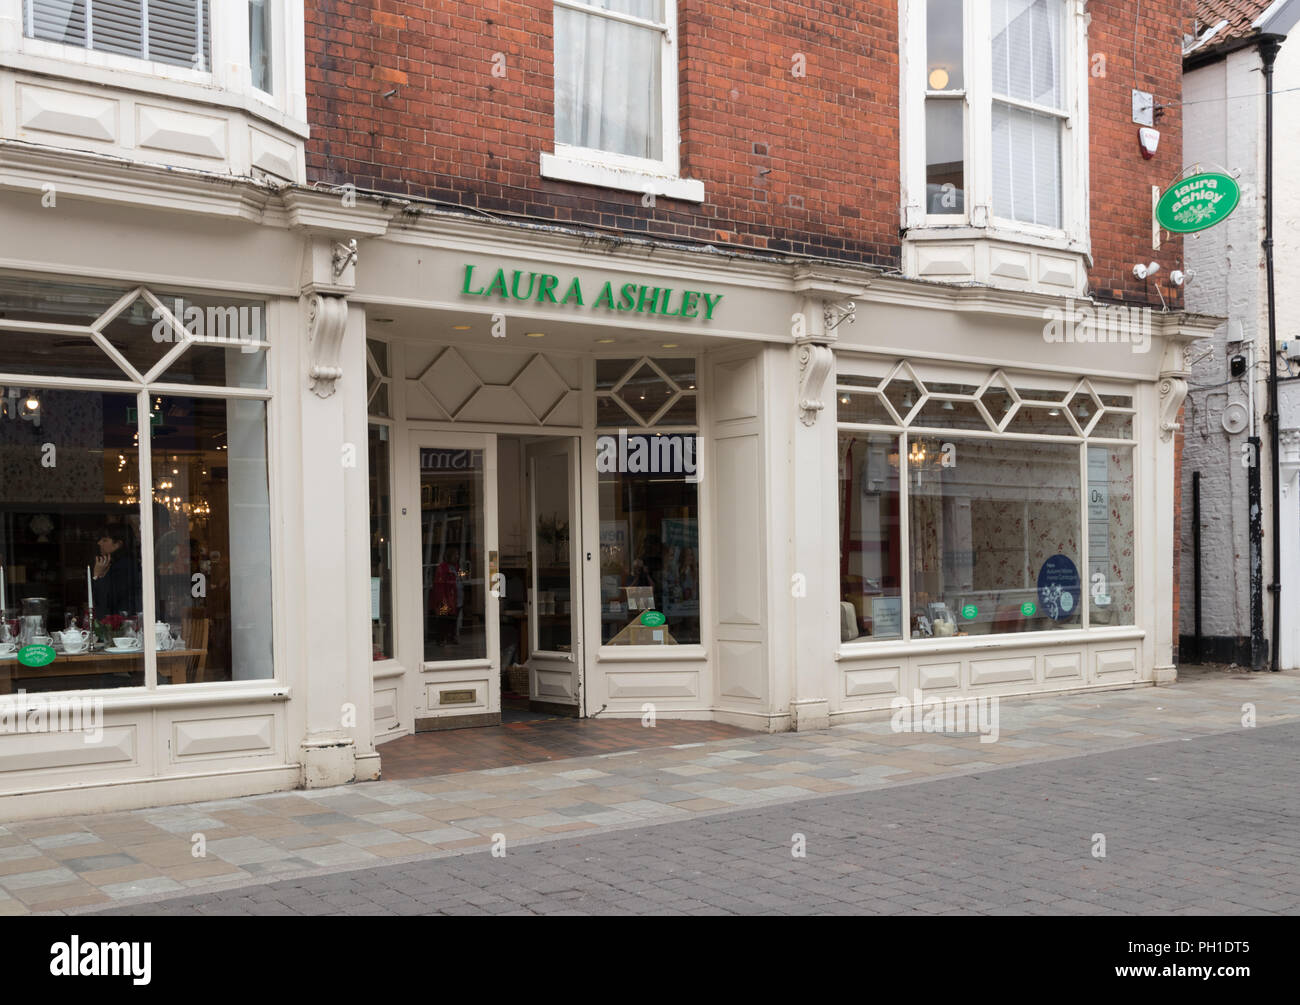 The Laura Ashley shop in Beverley, East Yorkshire - Stock Image